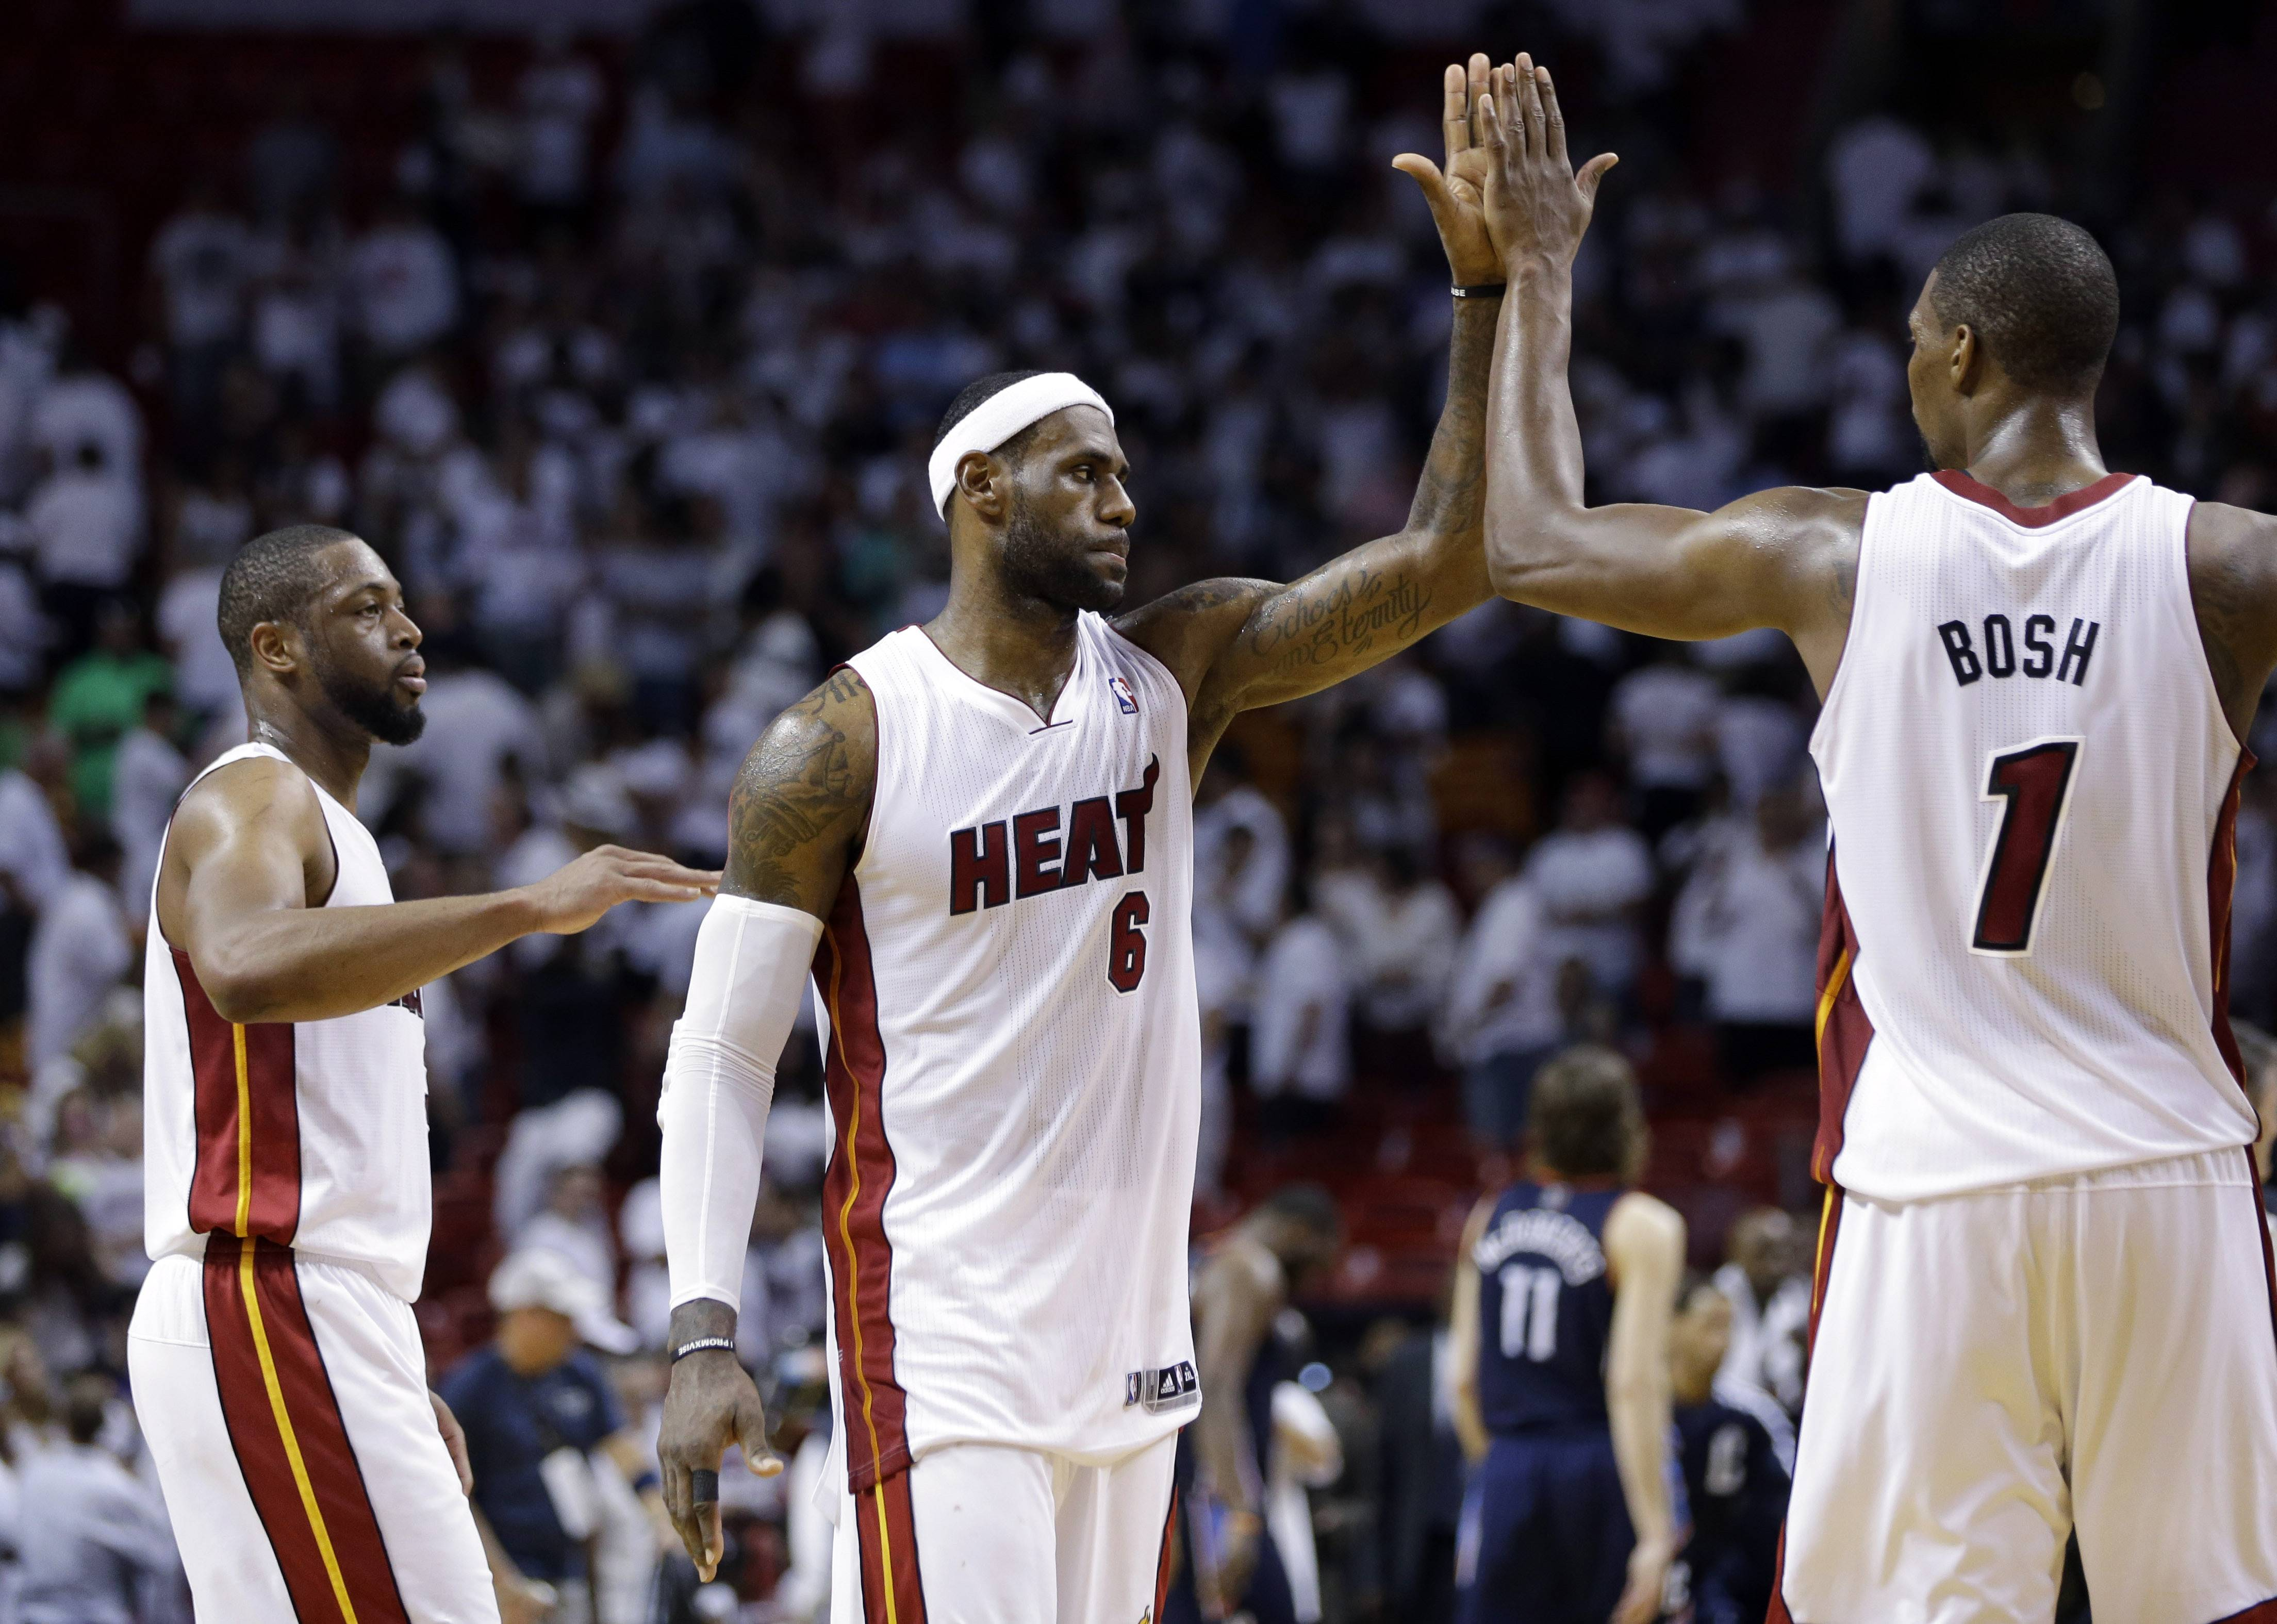 FILE - In this April 23, 2014 file photo, Miami Heat's LeBron James (6) high-fives Chris Bosh (1) after the Heat defeated the Charlotte Bobcats 101-97 in Game 2 of an opening-round NBA basketball playoff series in Miami. At left is Dwyane Wade. A person familiar with the situation tells The Associated Press that James has decided to opt out of the final two years of his contract with the Heat and become a free agent on July 1. Opting out does not mean James has decided to leave the Heat, said the person, who spoke on condition of anonymity because neither the four-time NBA MVP nor the team had made any public announcement.